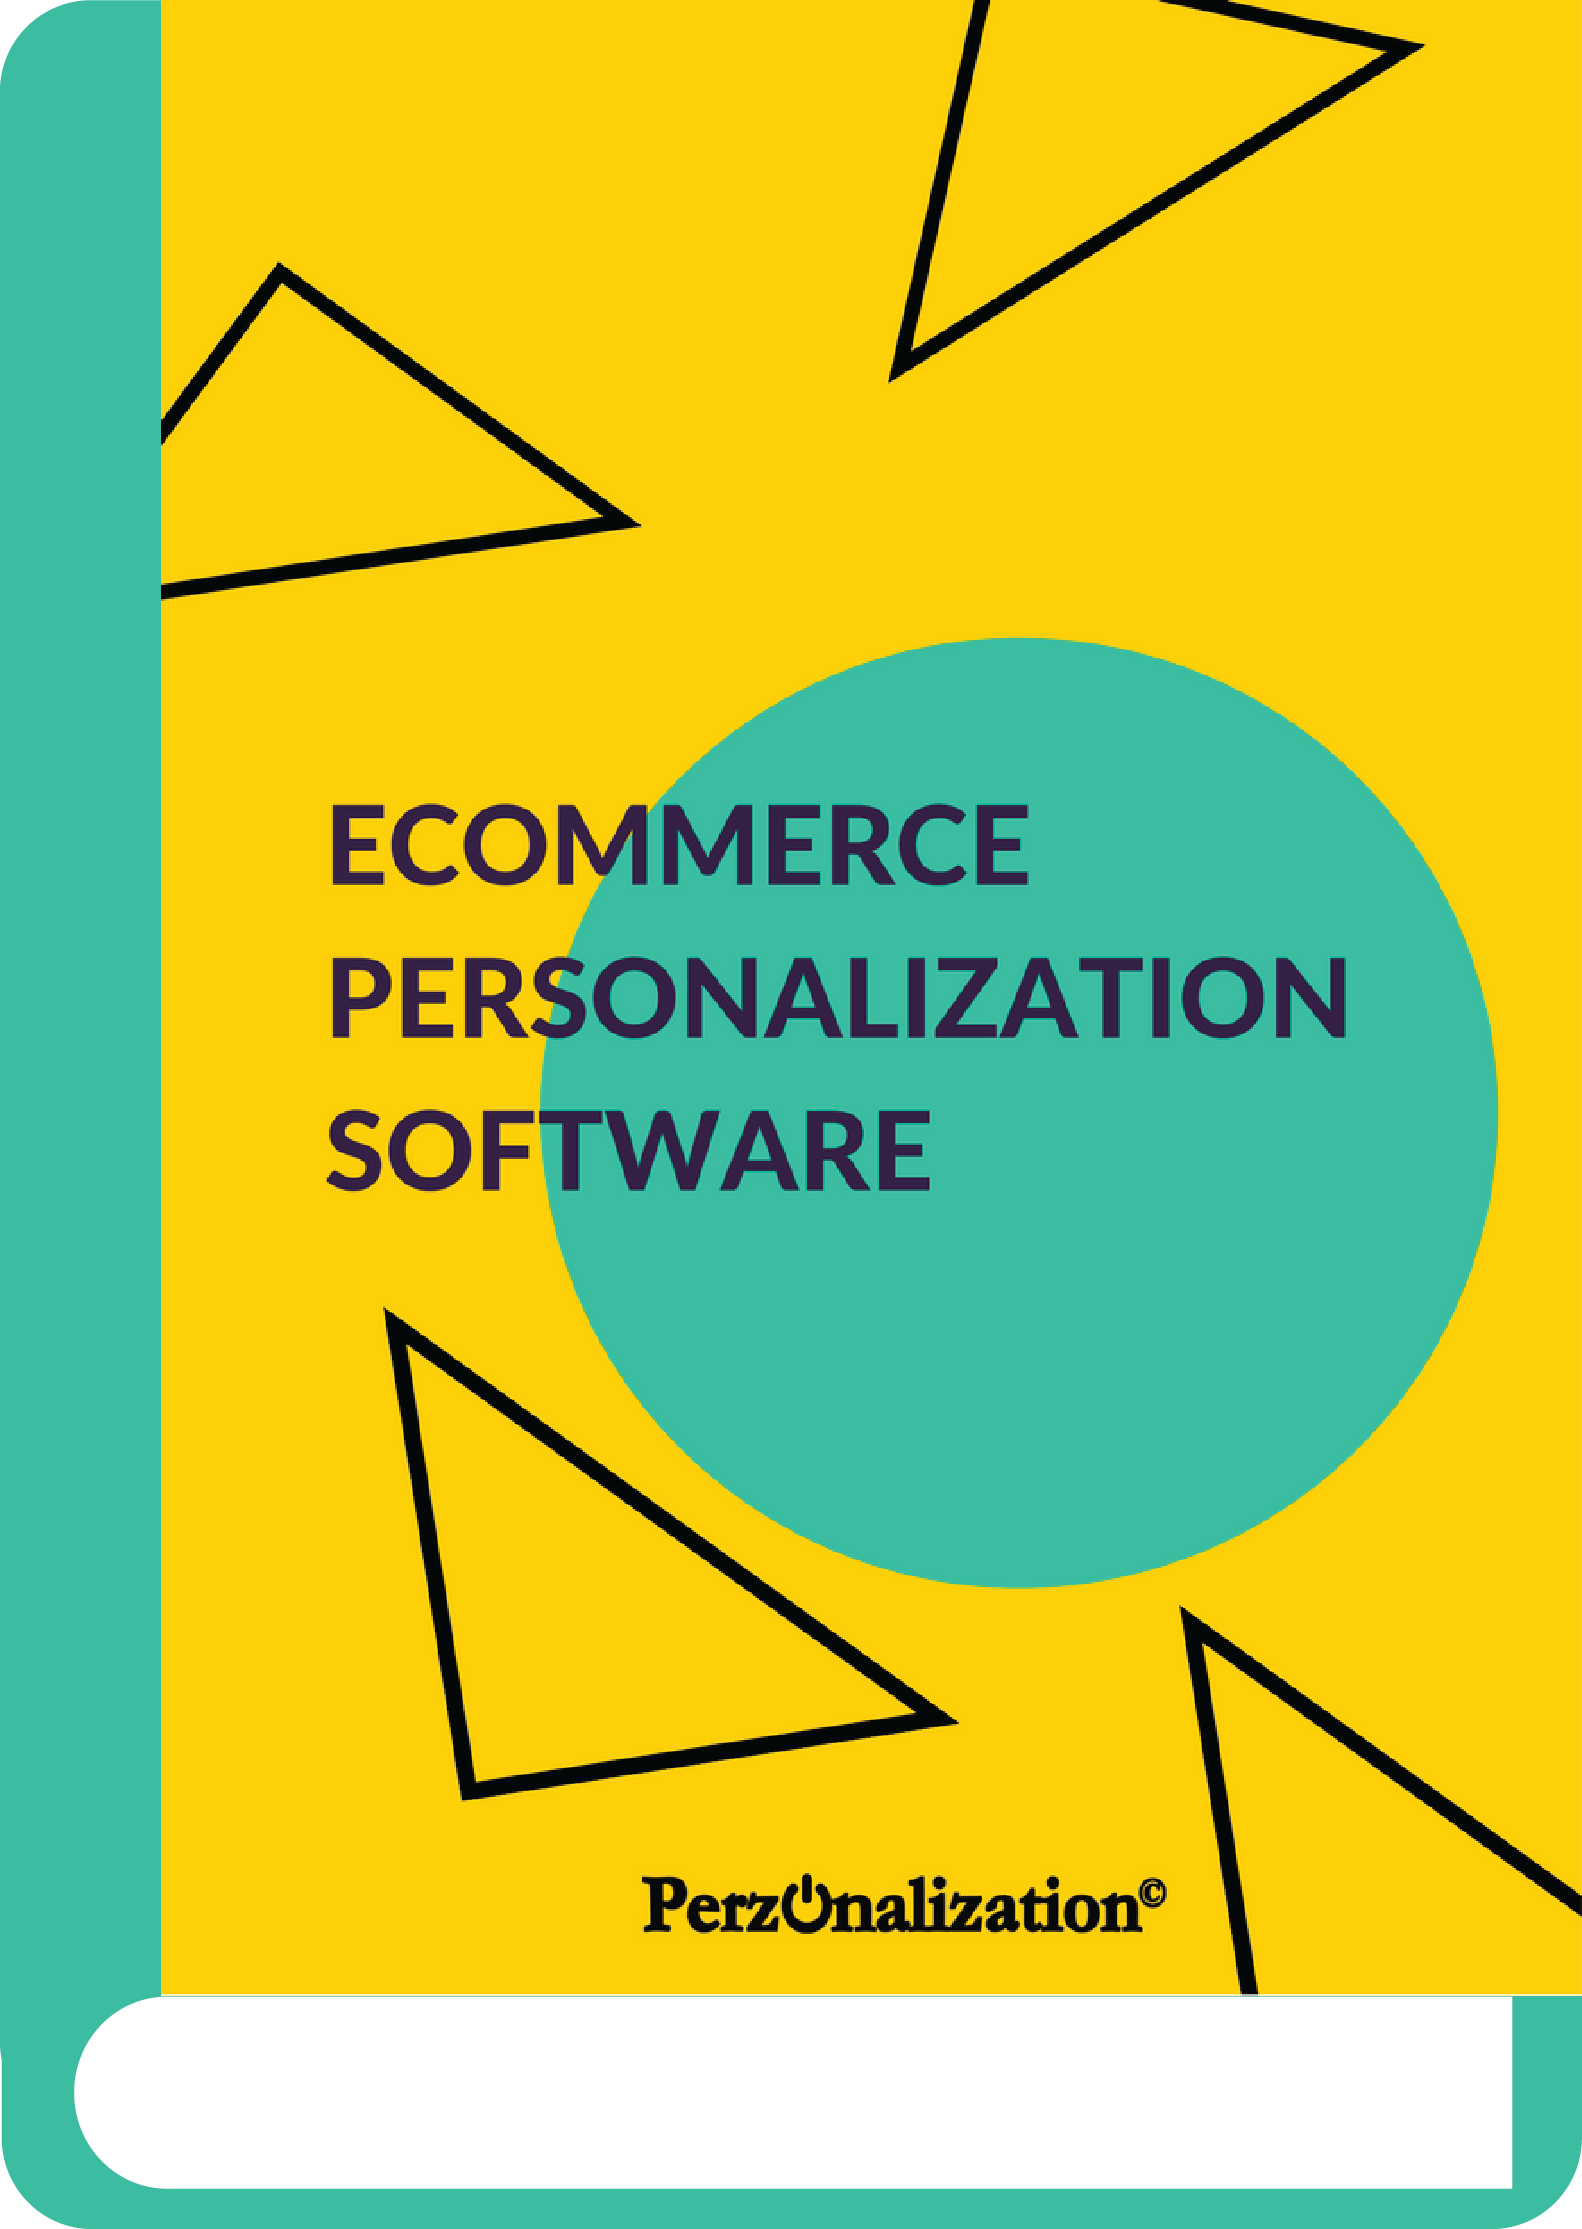 E-Commerce personalization software is a tool that is developed explicitly to personalize E-Commerce websites. This eBook explains what a personalization software is, the evolution, current implications, the need in E-Commerce and how to select a vendor for personalization needs.